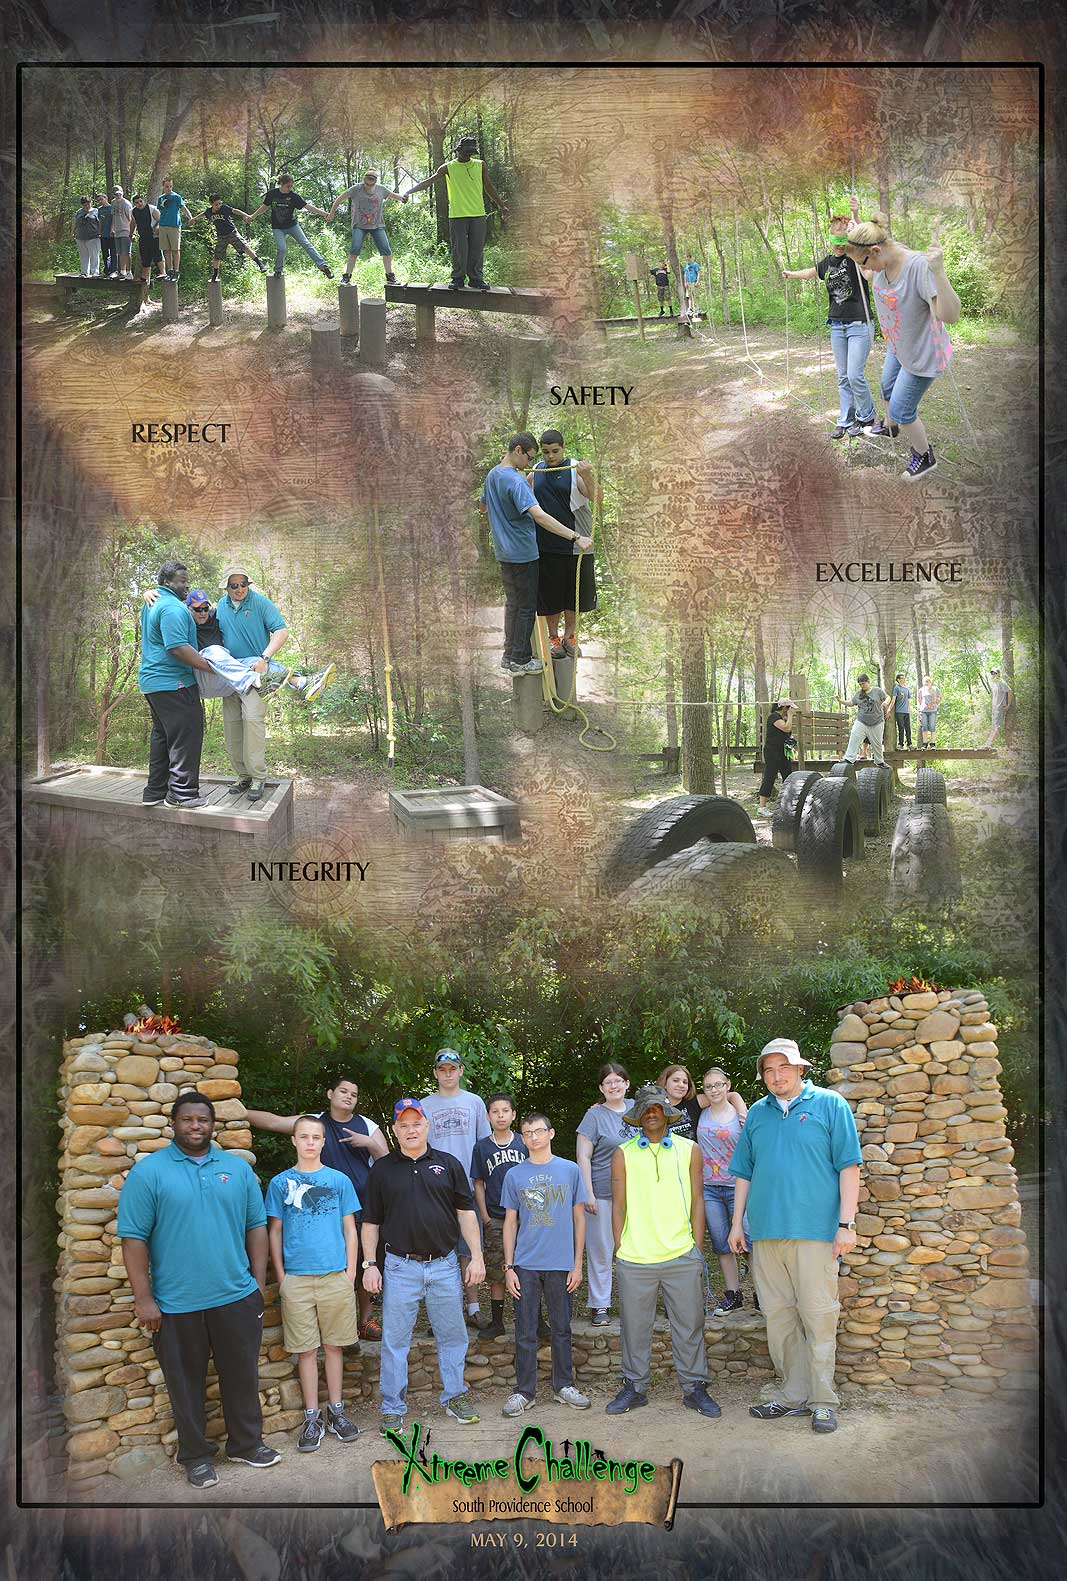 South Providence School at Xtreeme Challenge Outdoor Adventure Teambuilding Center in Monroe North Carolina